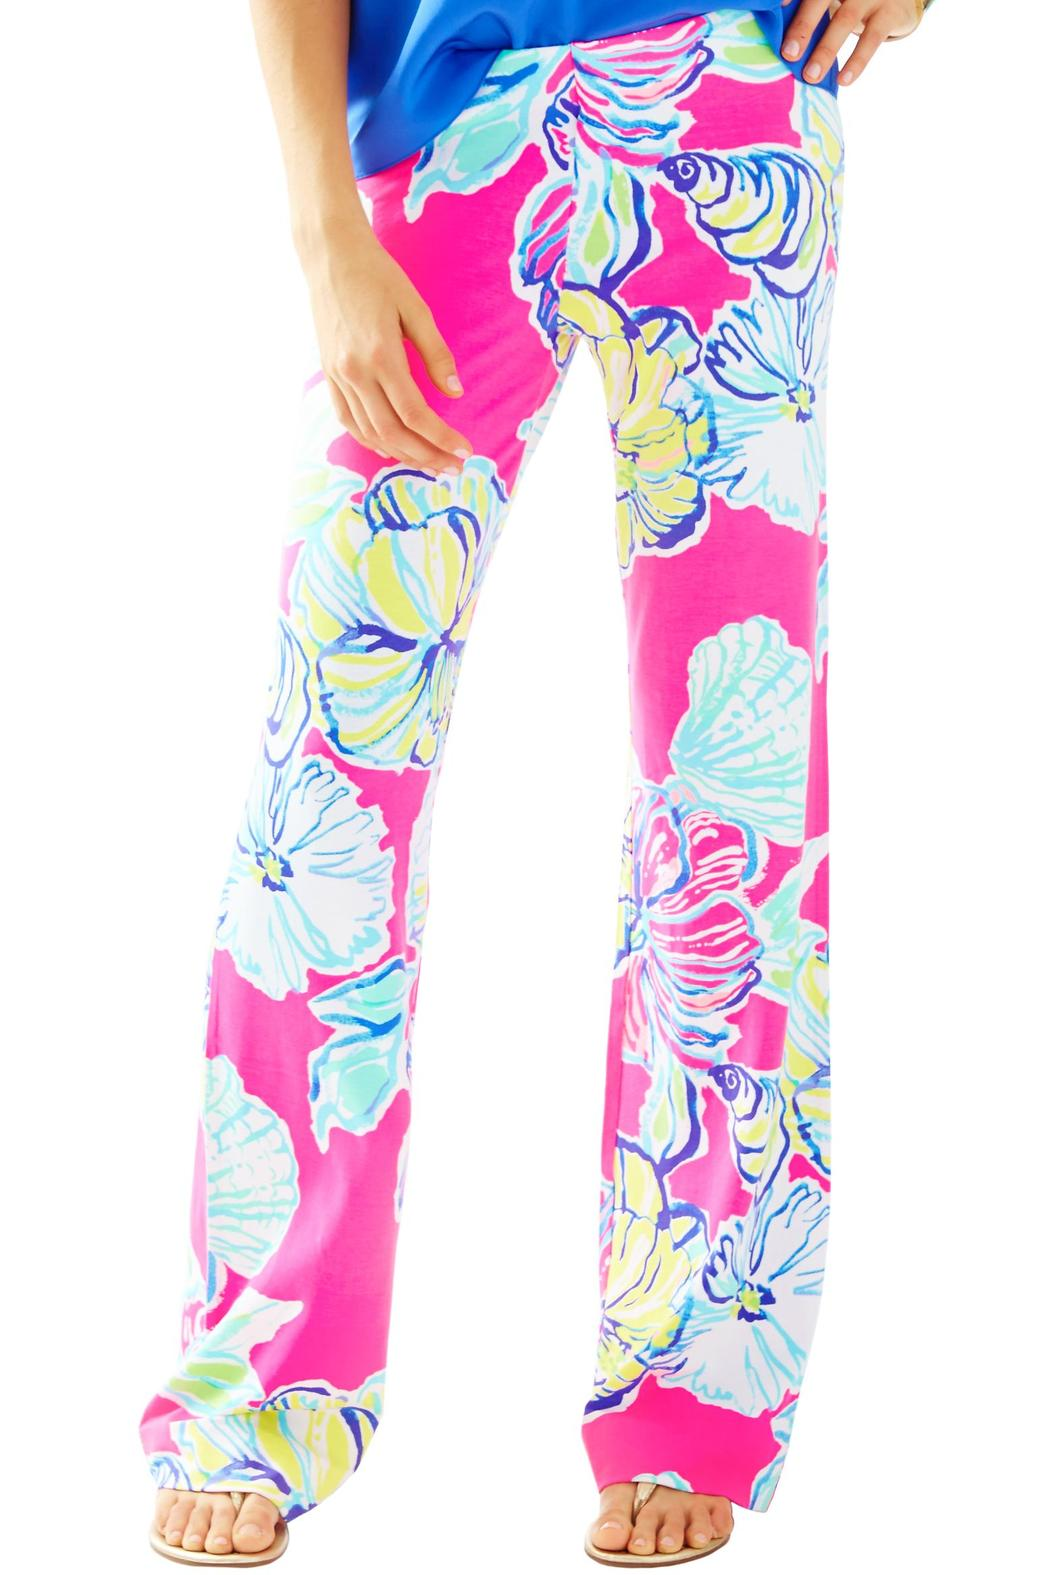 f2dbb45f59d613 Lilly Pulitzer Georgia May Palazzo Pant from Sandestin Golf and ...